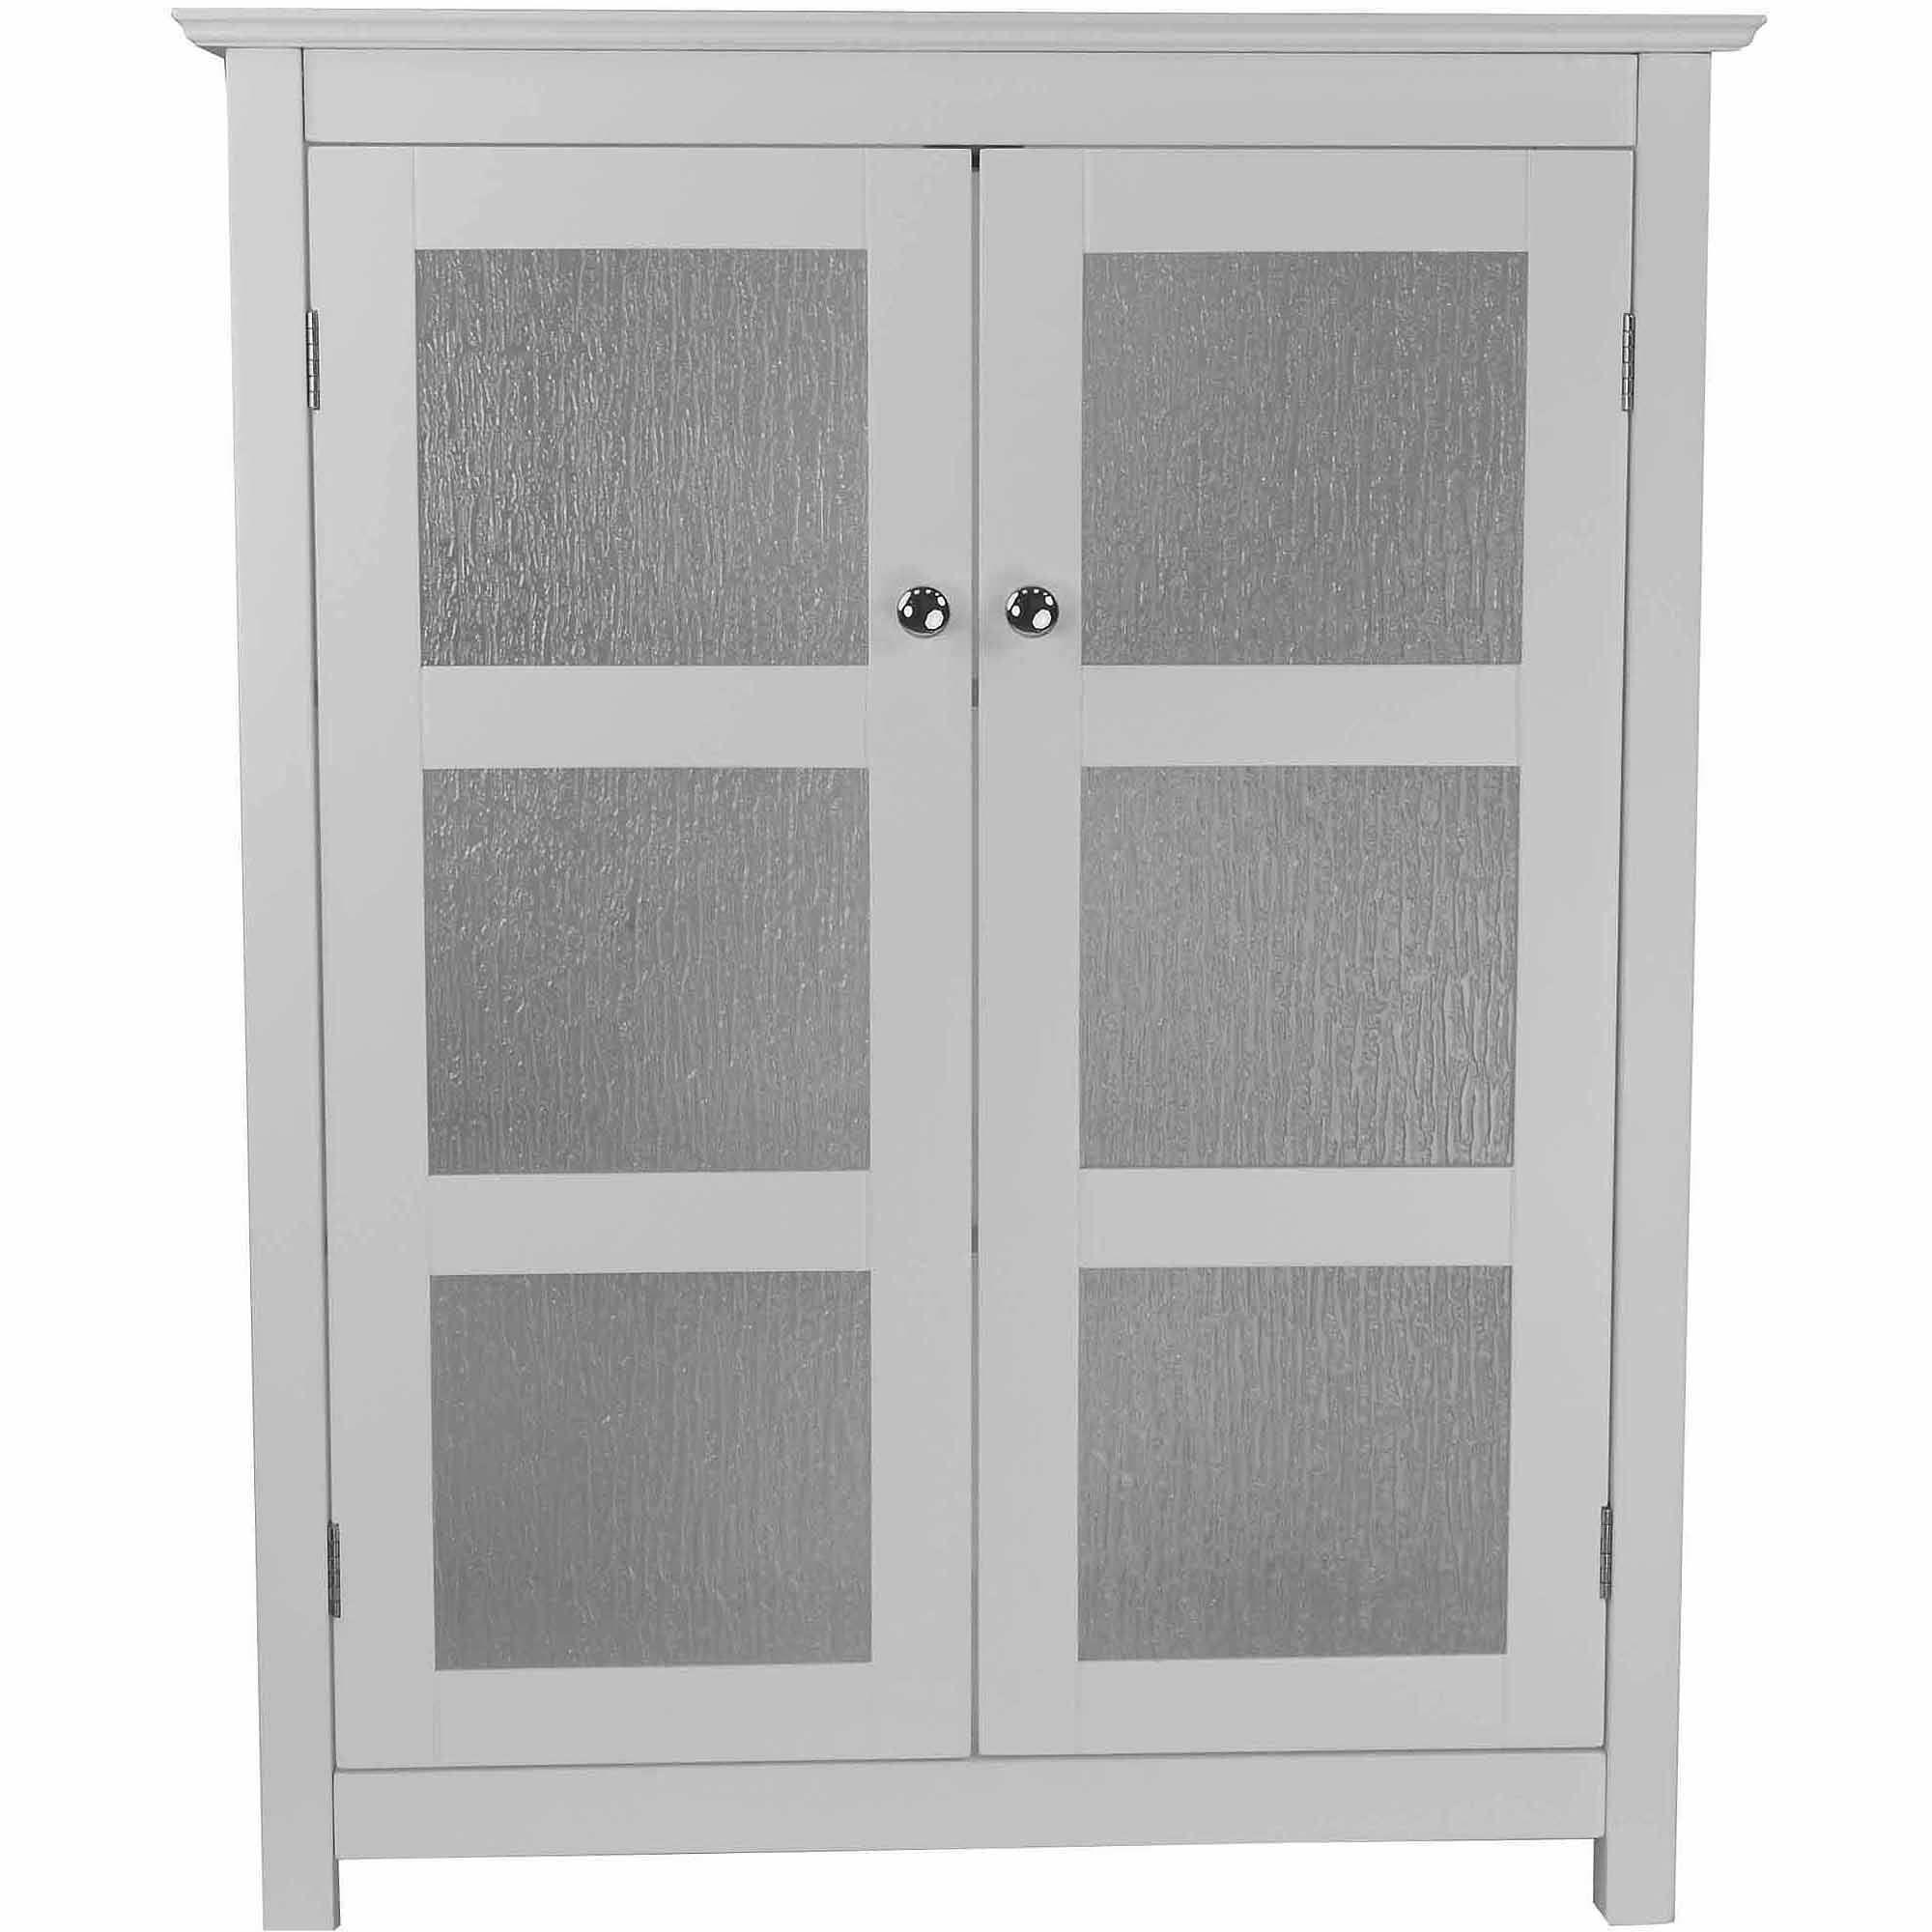 Glass door cabinet bathroom - Glass Door Cabinet Bathroom 9